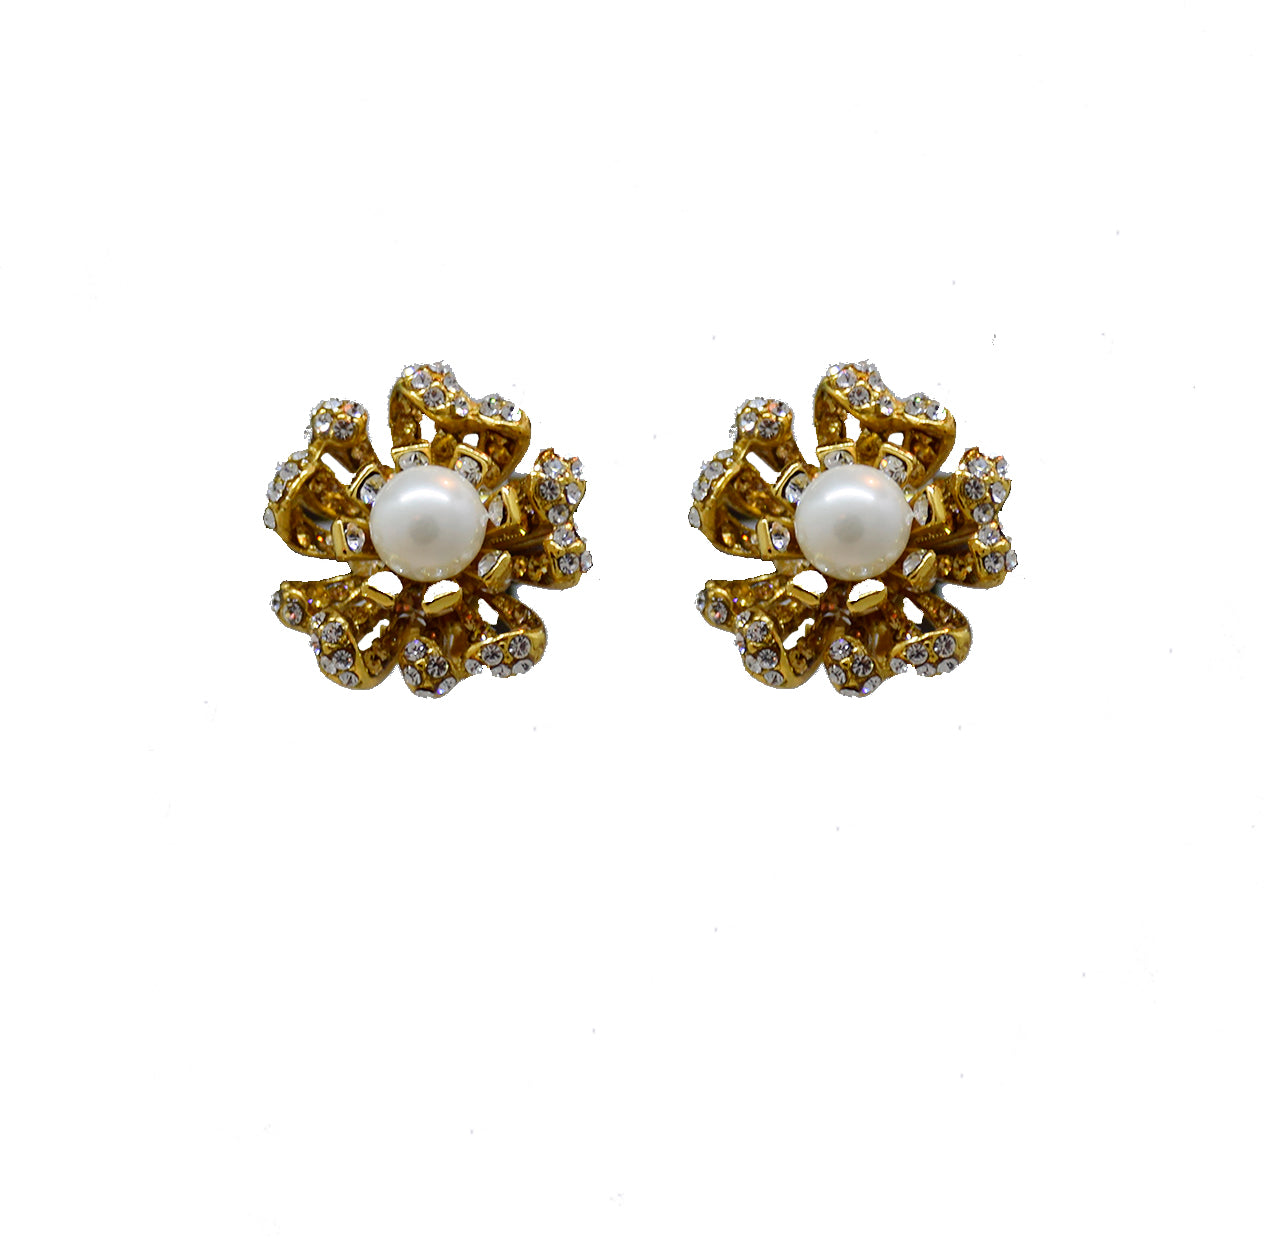 139 Gold and crystal flower clip earring